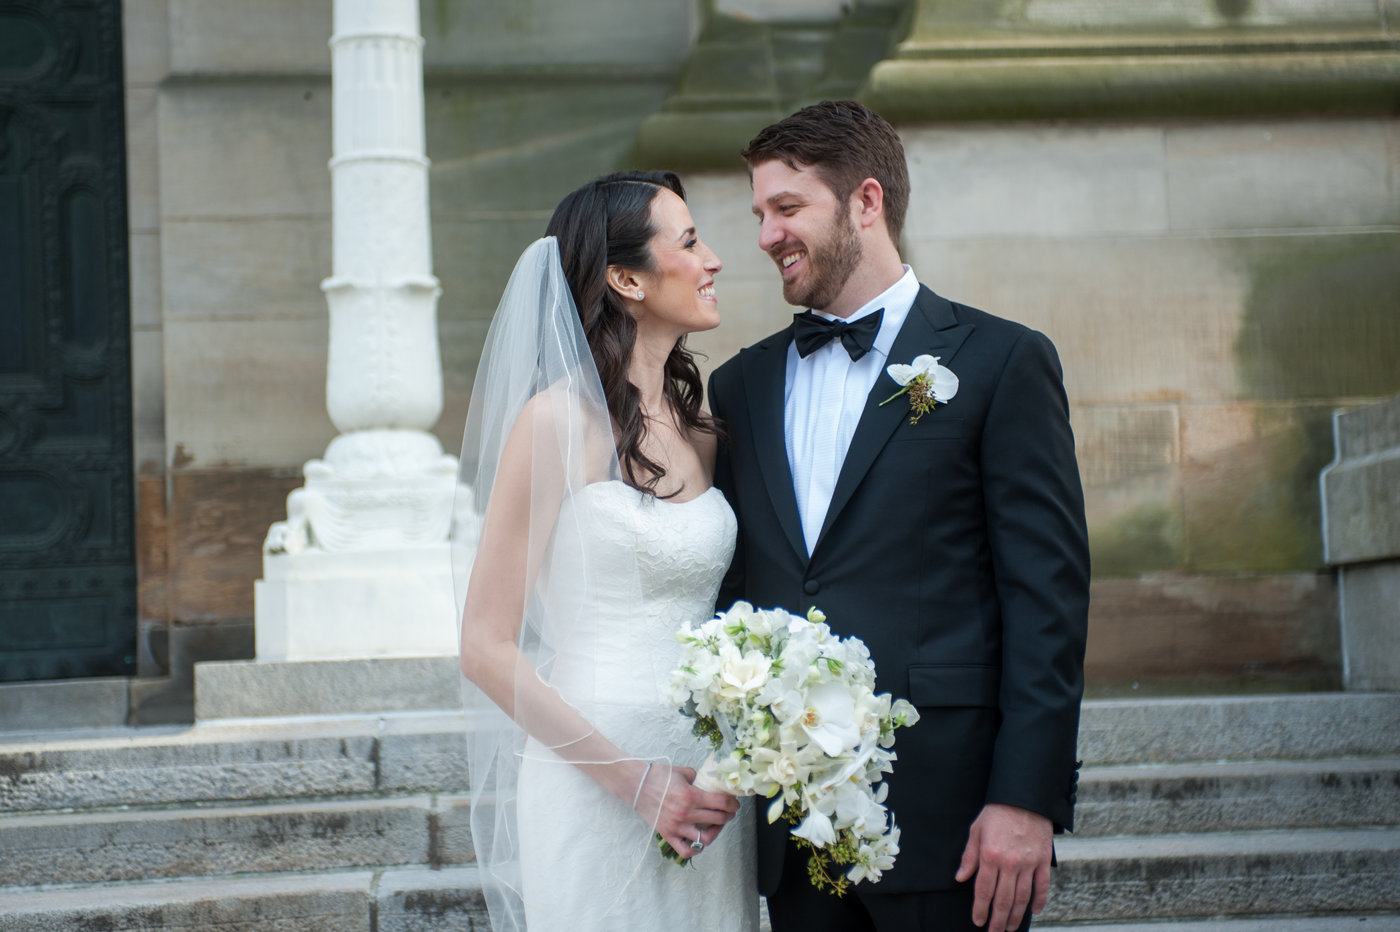 Carli and Scott - Photos by Lynne Goldstein / Planned by Natalie Berger